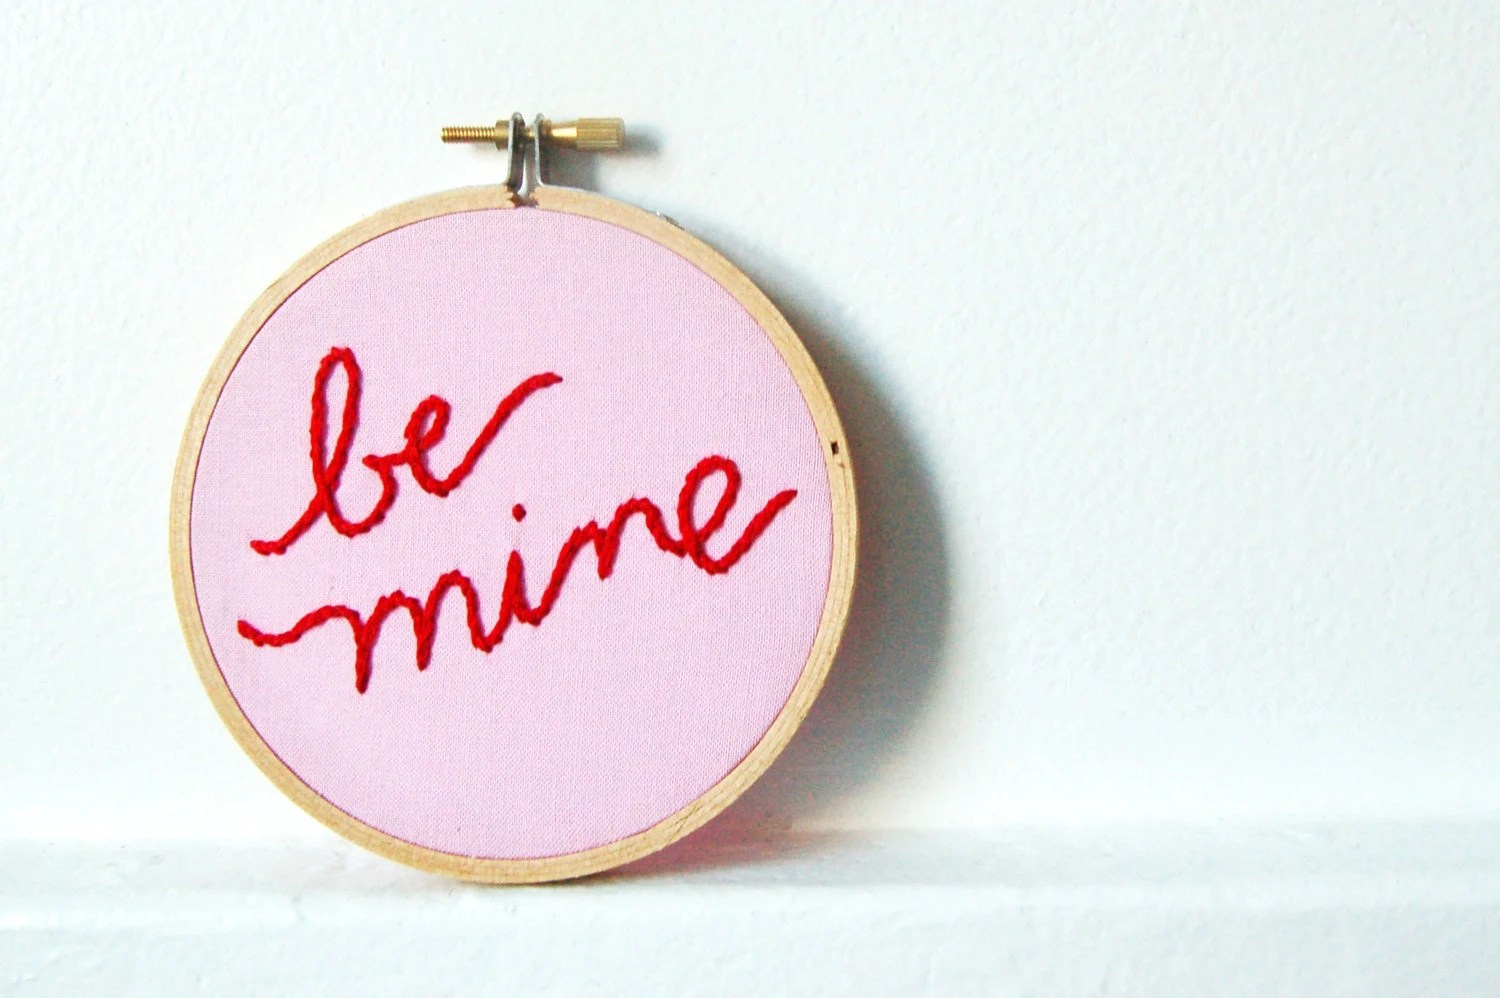 Valentine's Day Message Hand Embroidery in 4 inch Hoop. Be Mine. Red and Pink.  By merriweathercouncil on Etsy